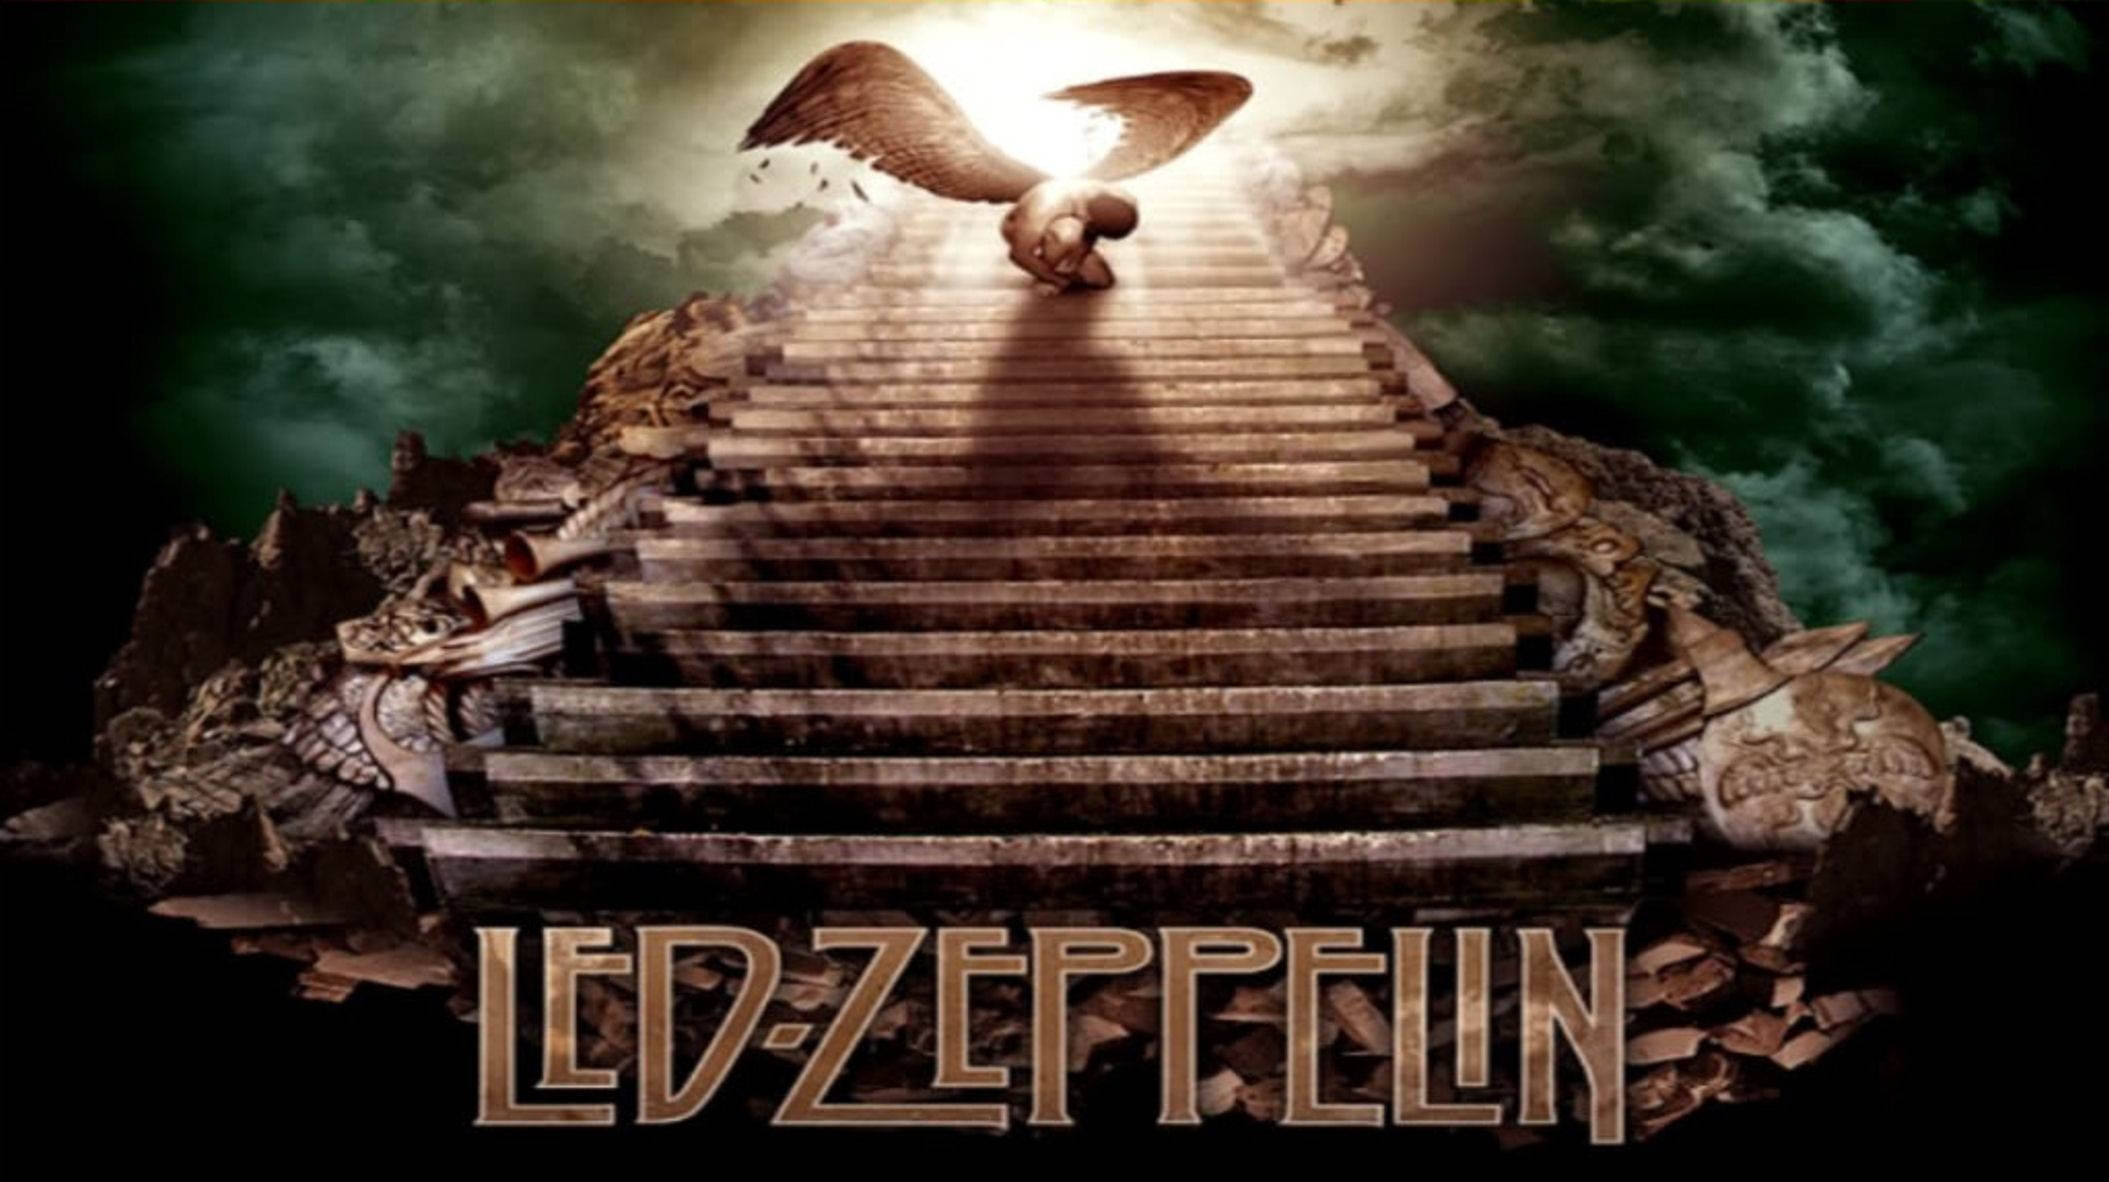 48 Led Zeppelin Hd Wallpapers | Backgrounds – Wallpaper Abyss Intended For 2018 Led Zeppelin 3D Wall Art (View 12 of 20)